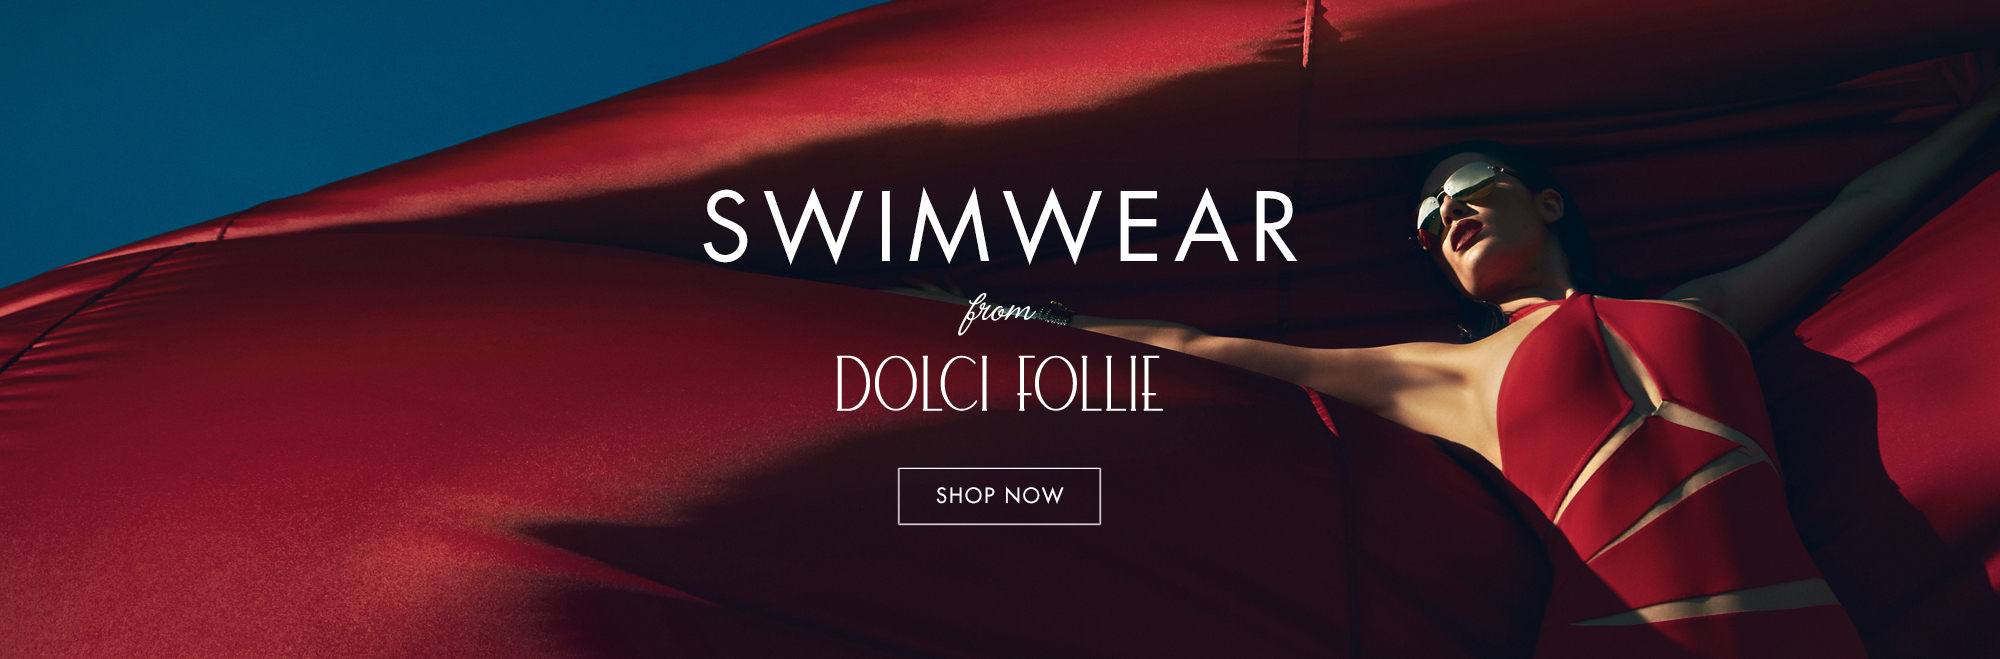 Swimwear from Dolci Follie